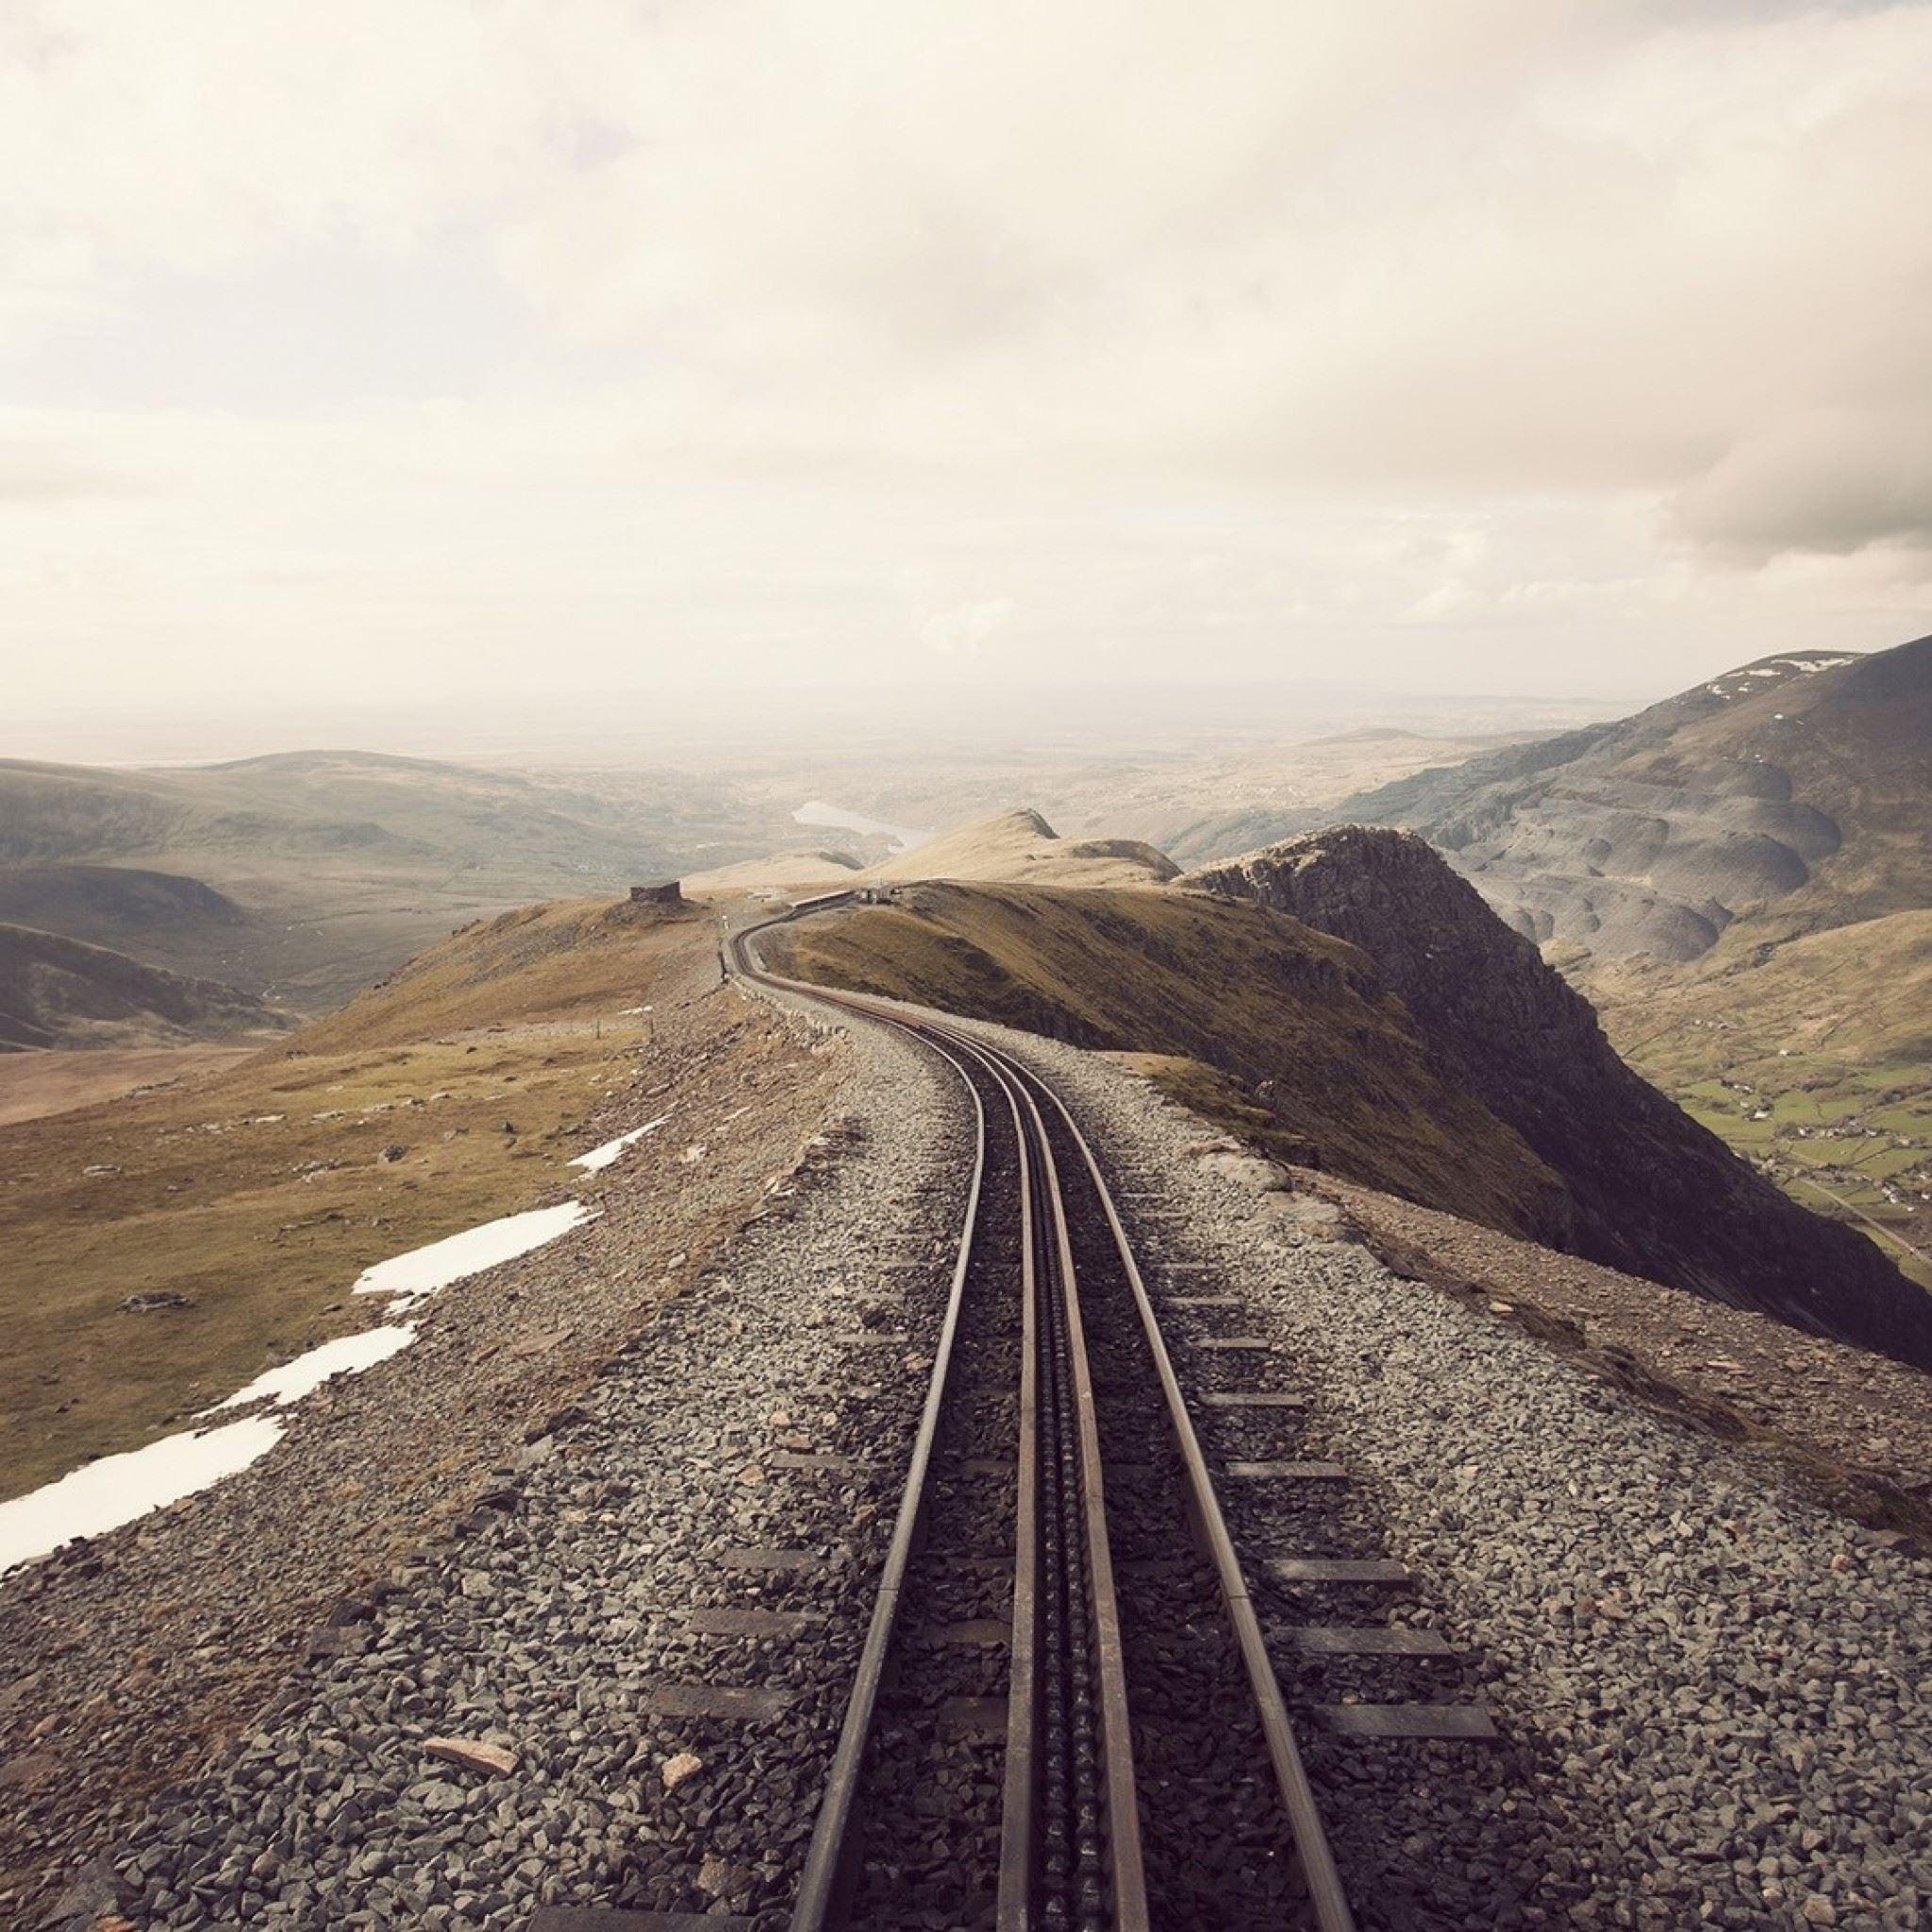 Mountains Clouds Landscapes Railroad Tracks iPad Air wallpaper